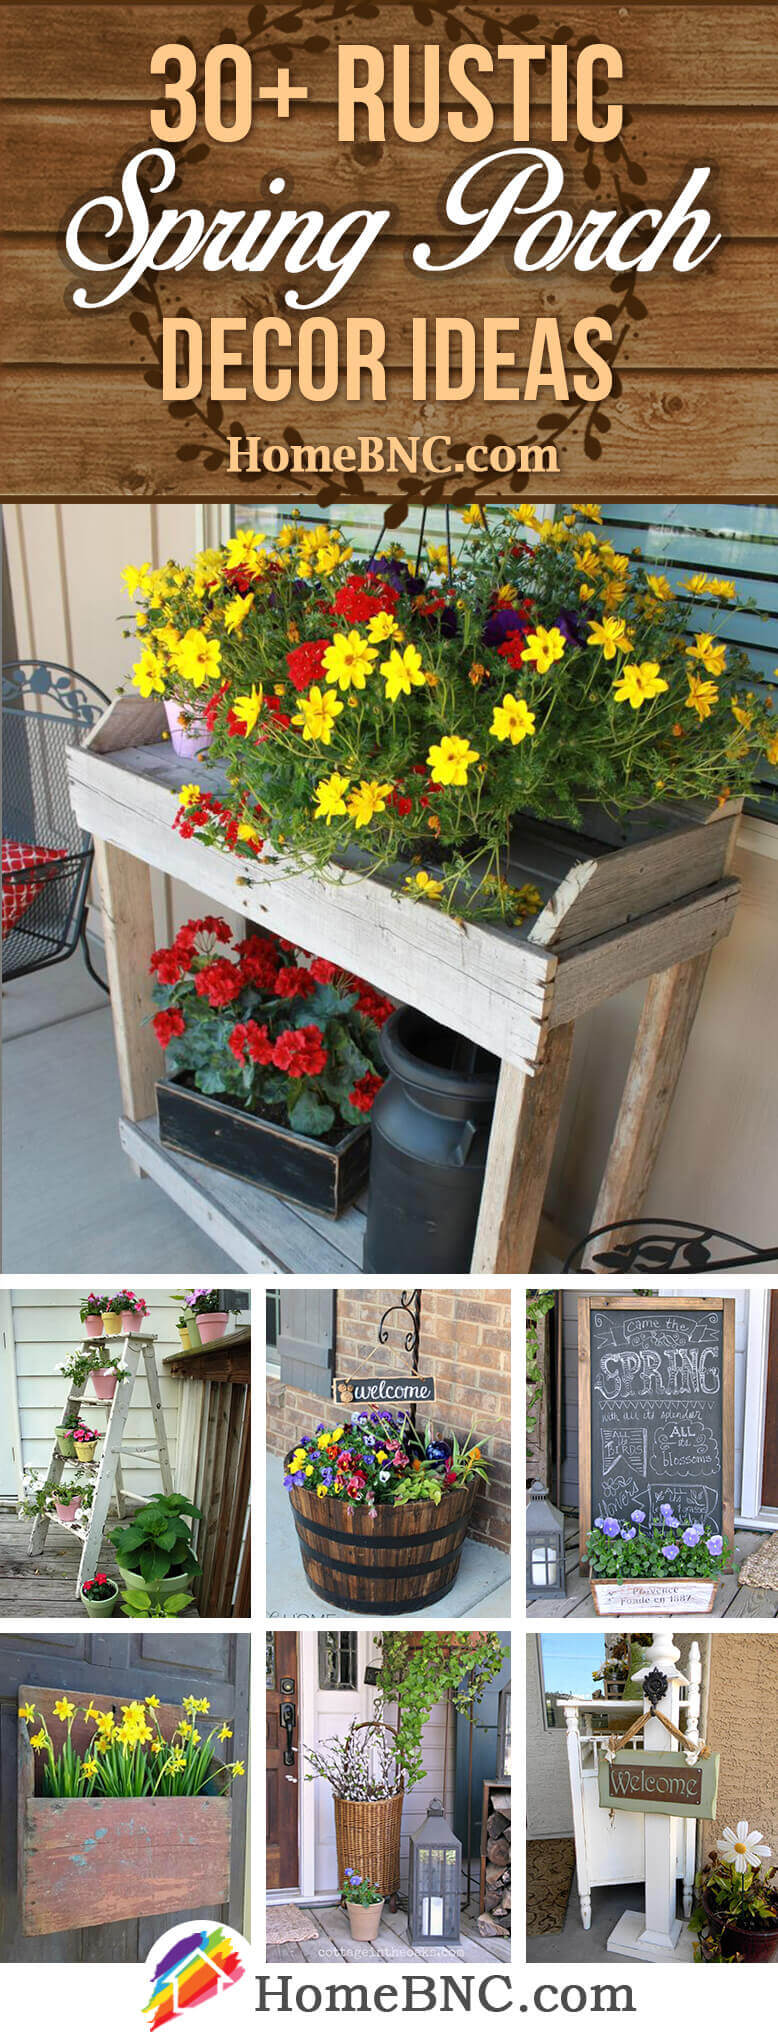 Rustic Spring Porch Decor Ideas